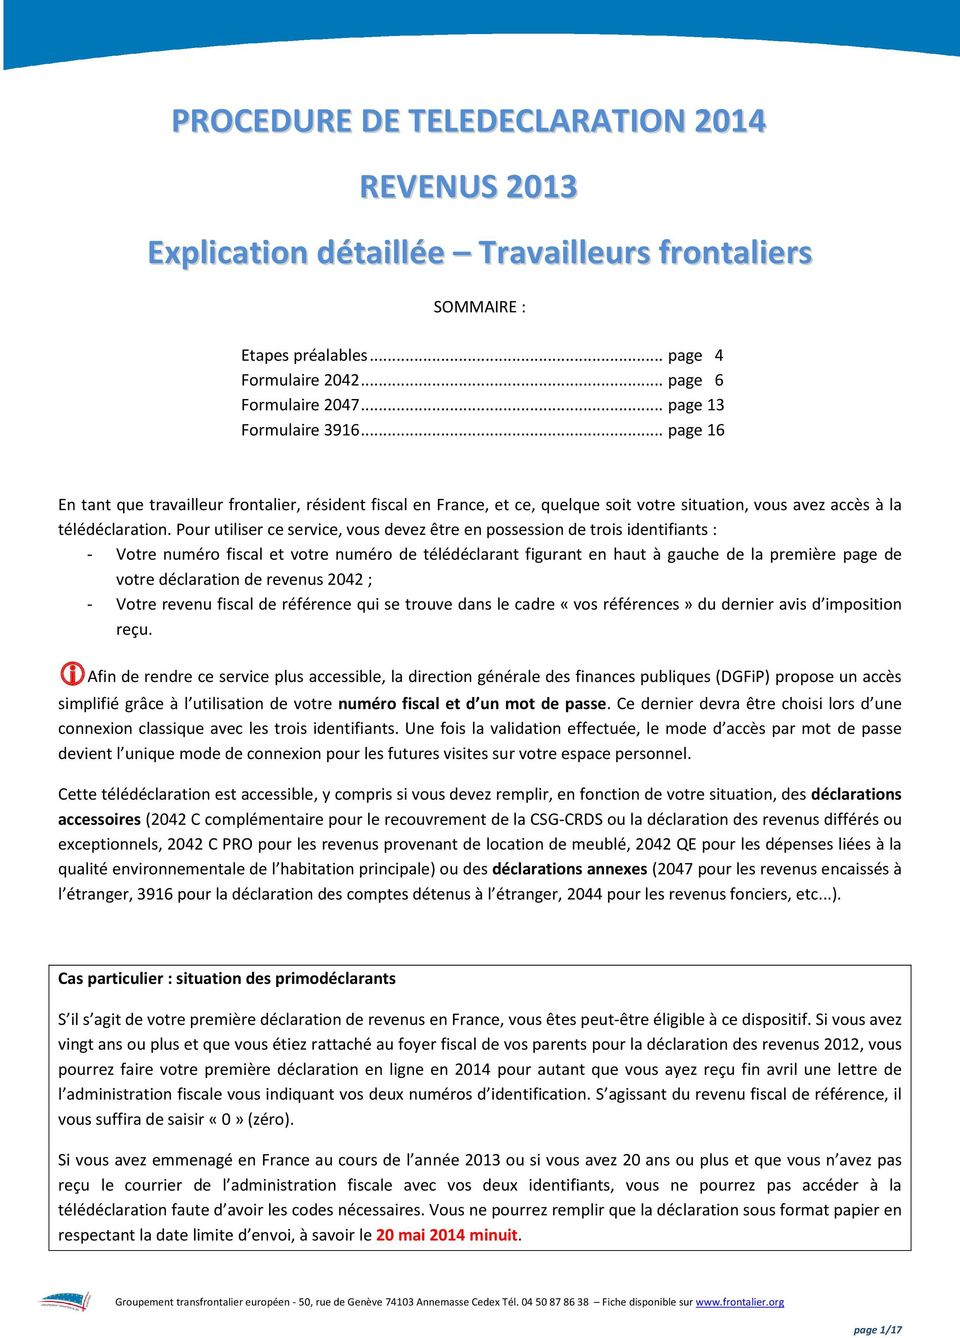 Sommaire Etapes Prealables Page 4 Formulaire Page 6 Formulaire